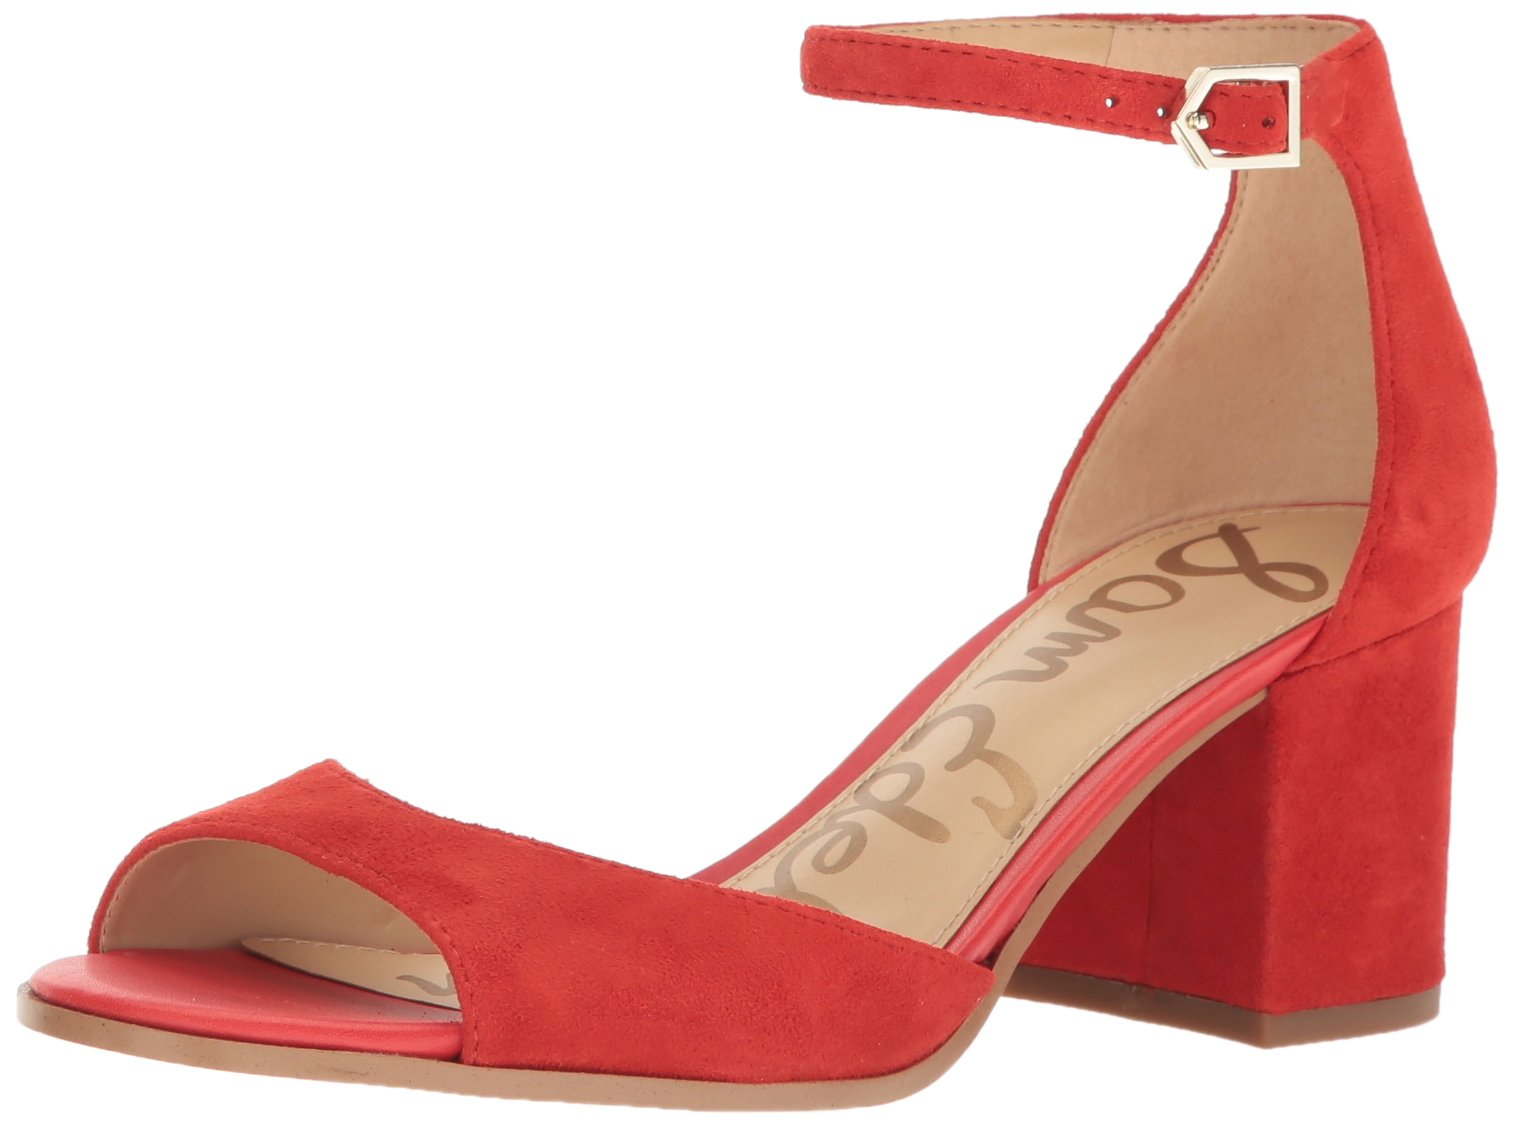 Sam Edelman Women's Susie, Havana Red Suede, 8 M US